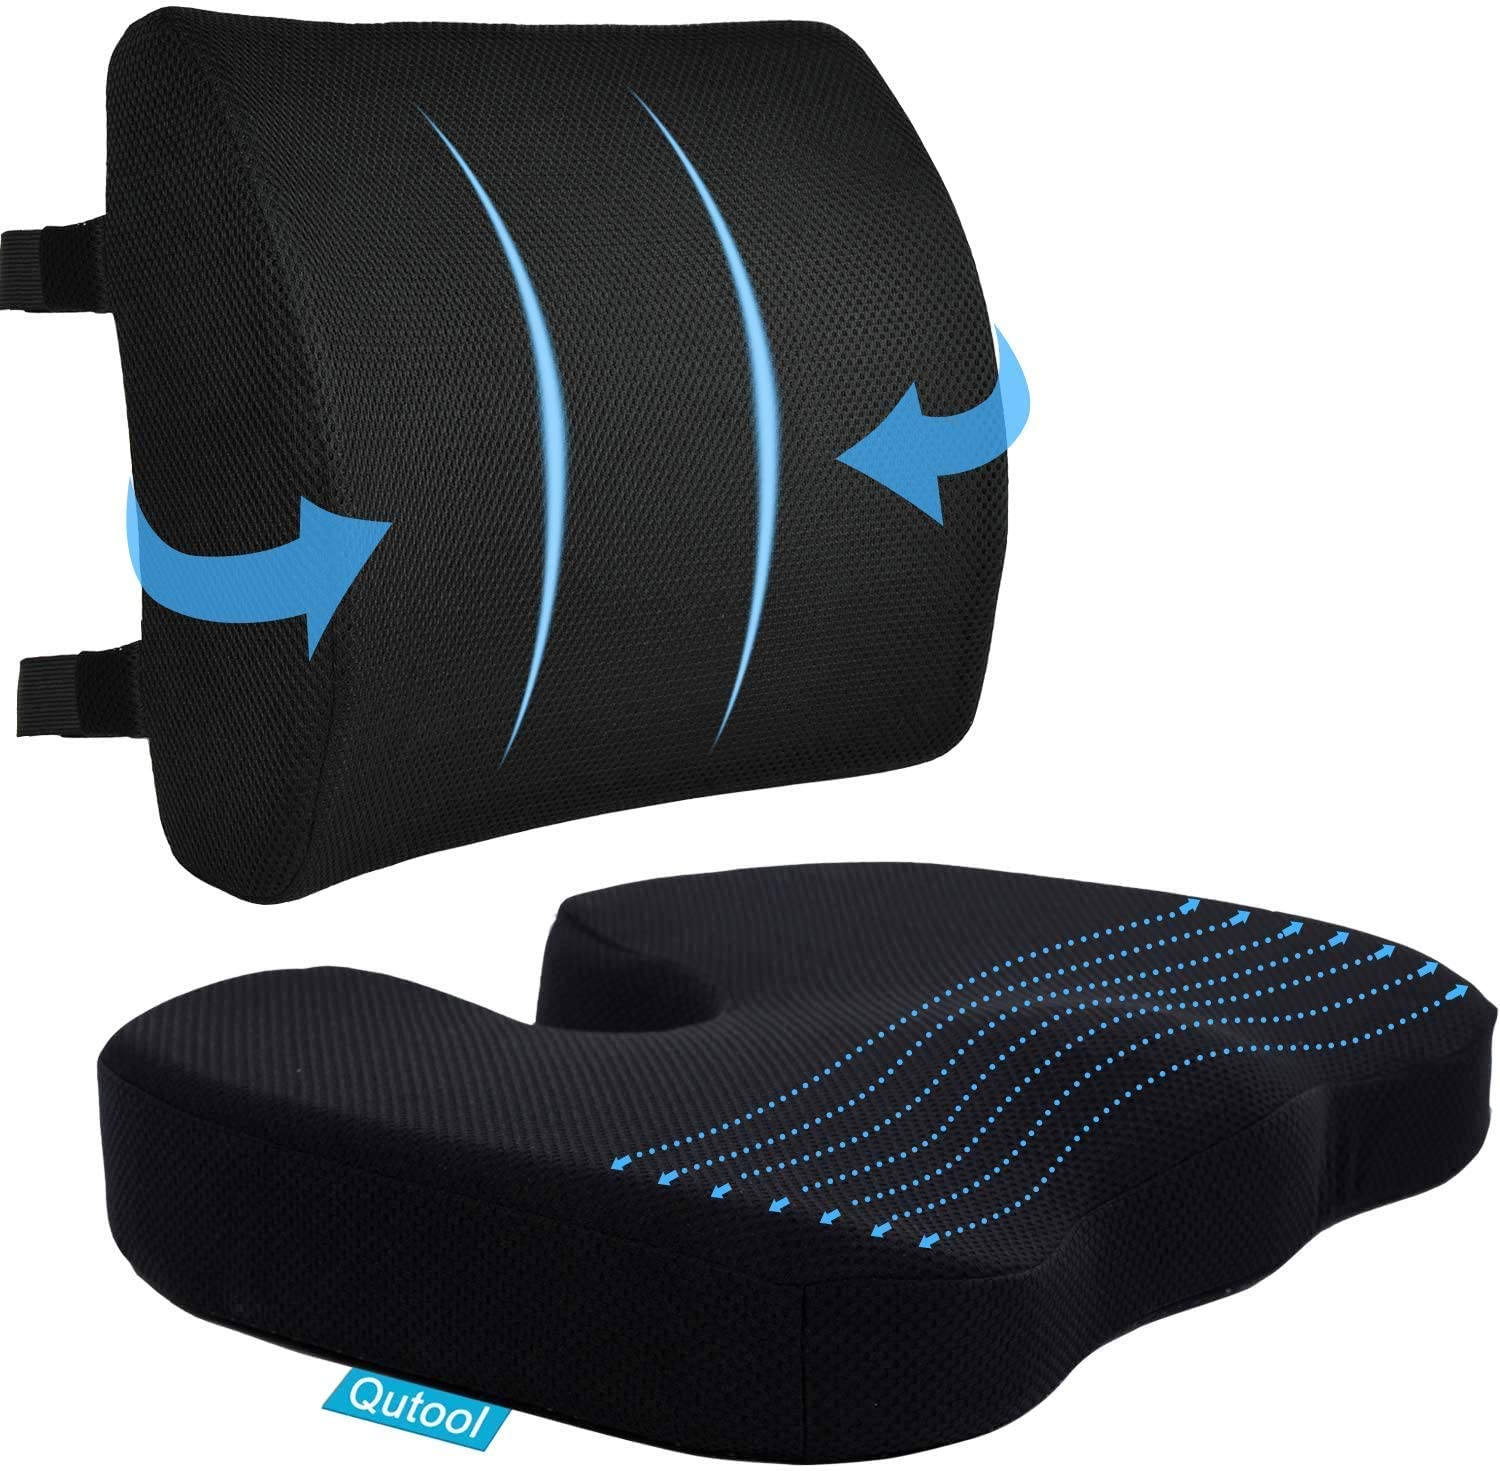 Car Foam Back Cushion Car Chair Waist Support Pillow Breathable with Mesh Cover for Office Chair Car Seat Wheelchair Car Chair Back Cushion